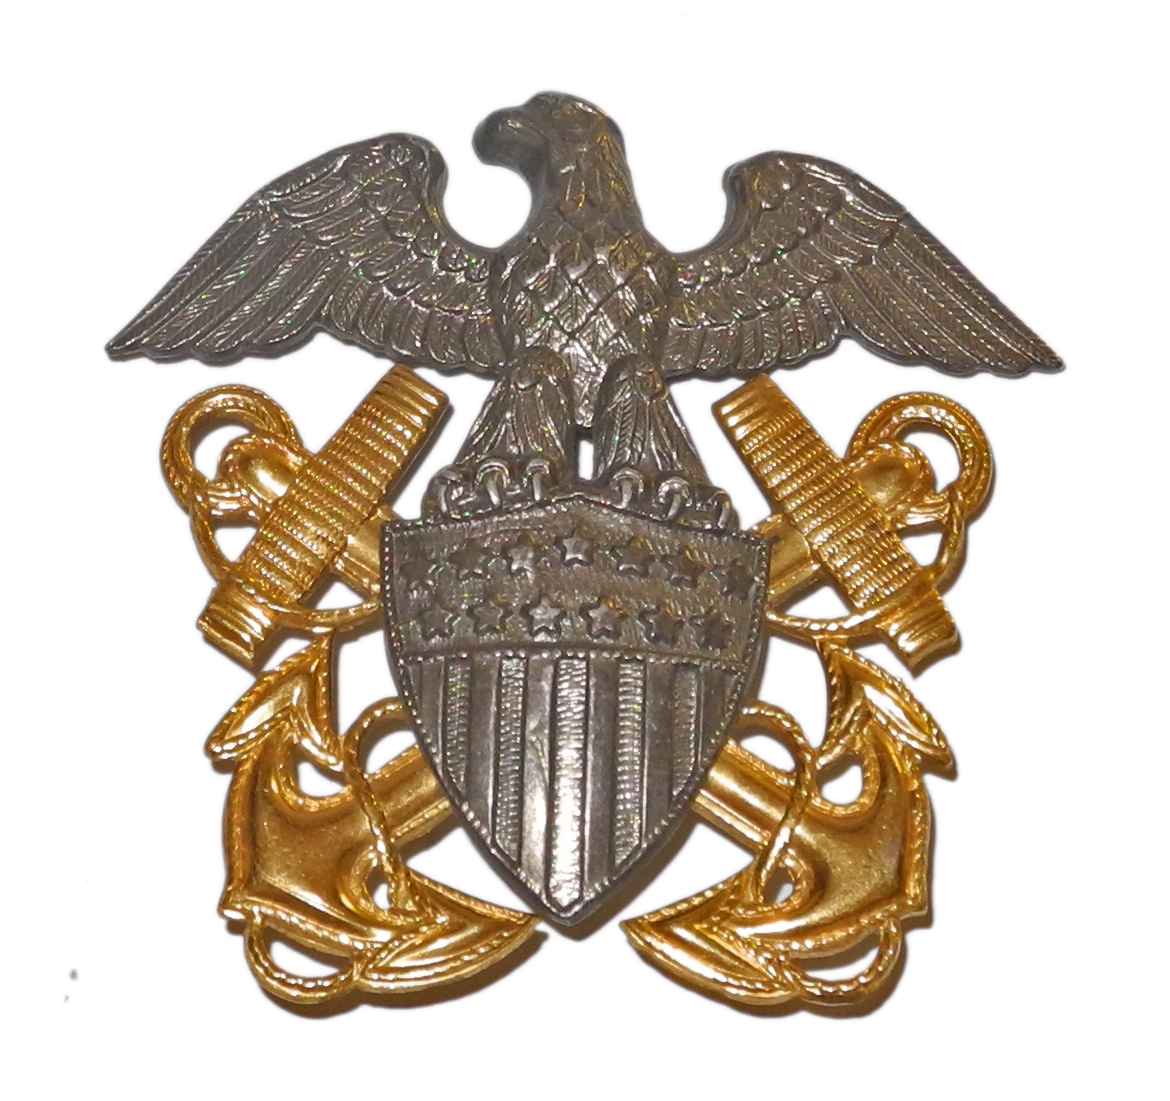 WWII US Navy officer's cap badge